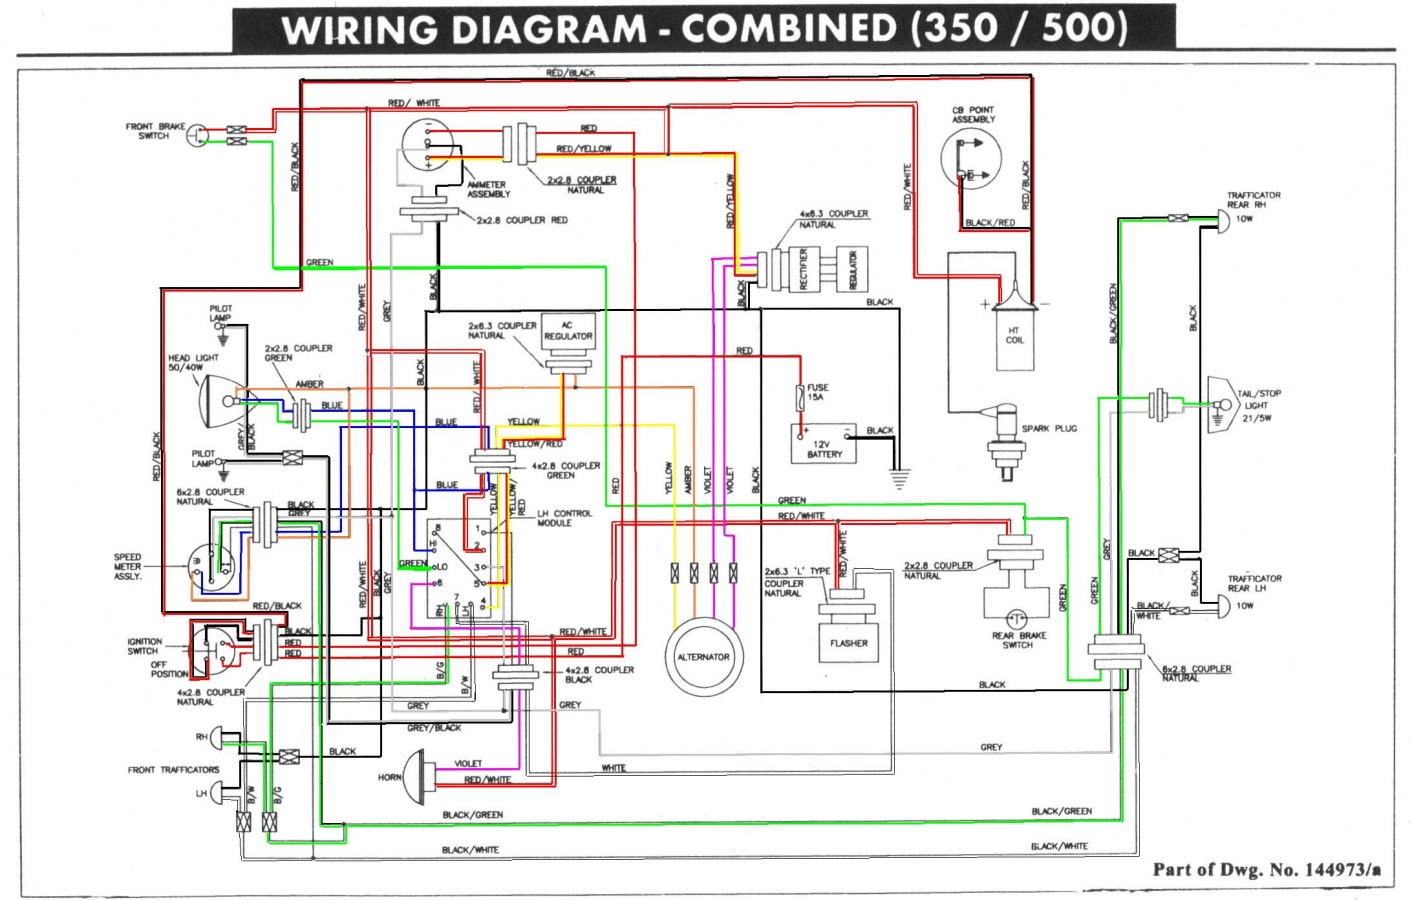 diagrams 875667 royal wiring diagrams royal enfield wiring dragster wiring diagram at reclaimingppi.co